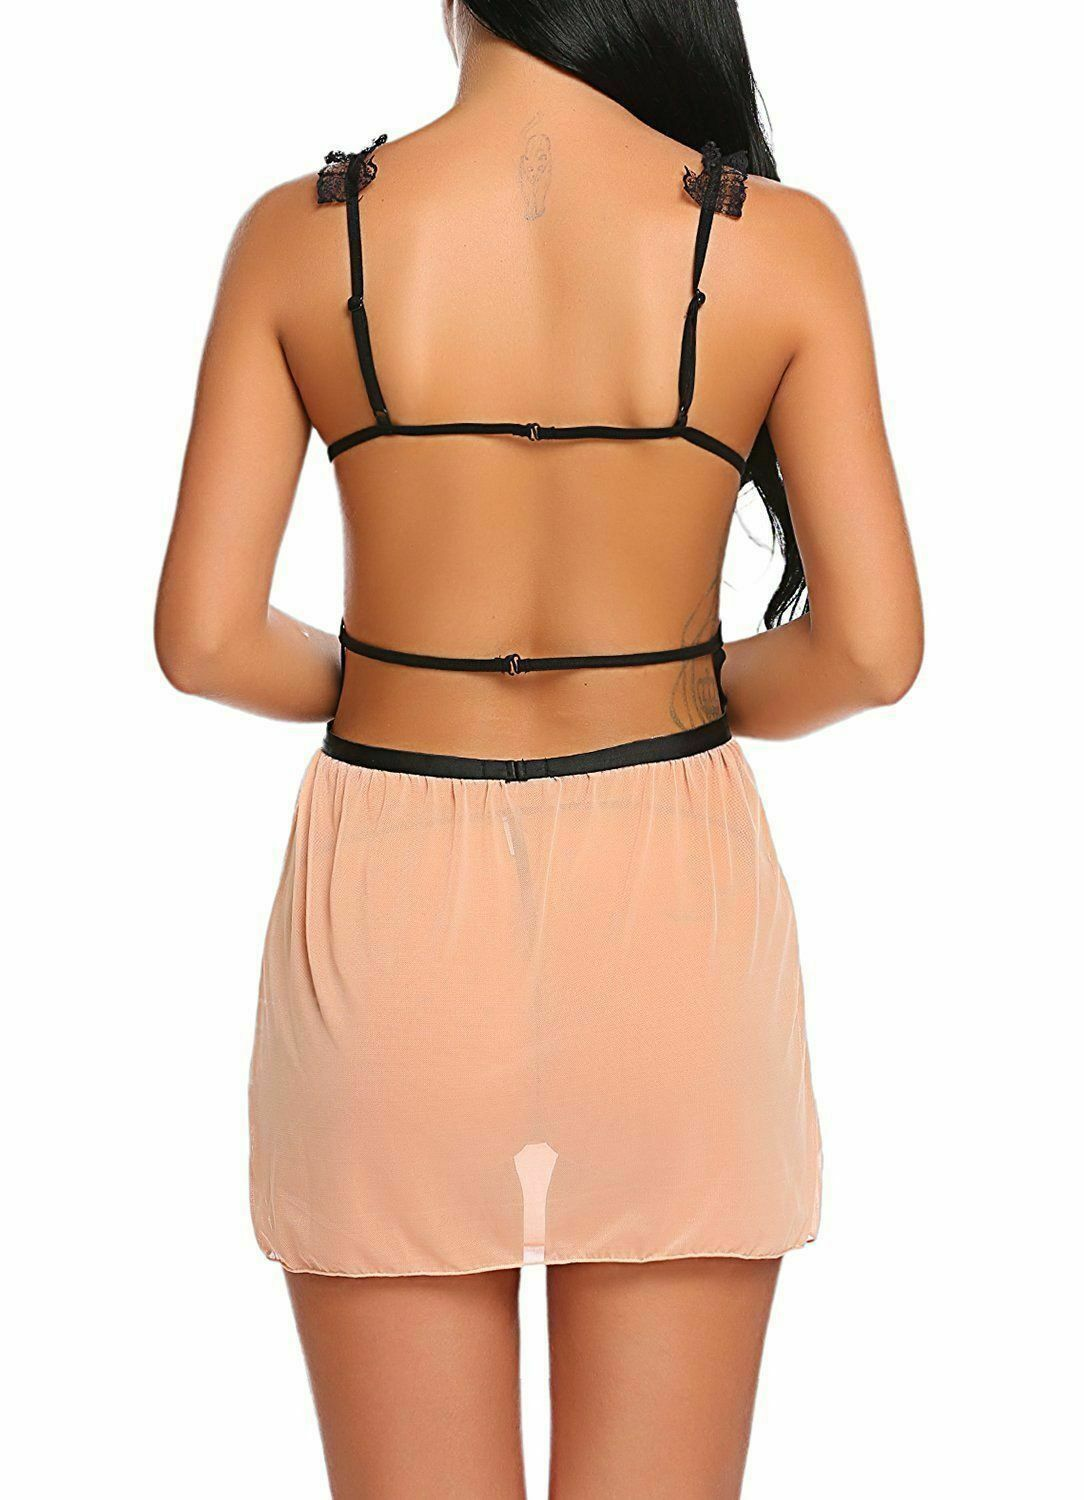 US Sexy-Lingerie Women Backless Open Cup Babydoll Sleepwear Lace Dress G-String Clothing, Shoes & Accessories